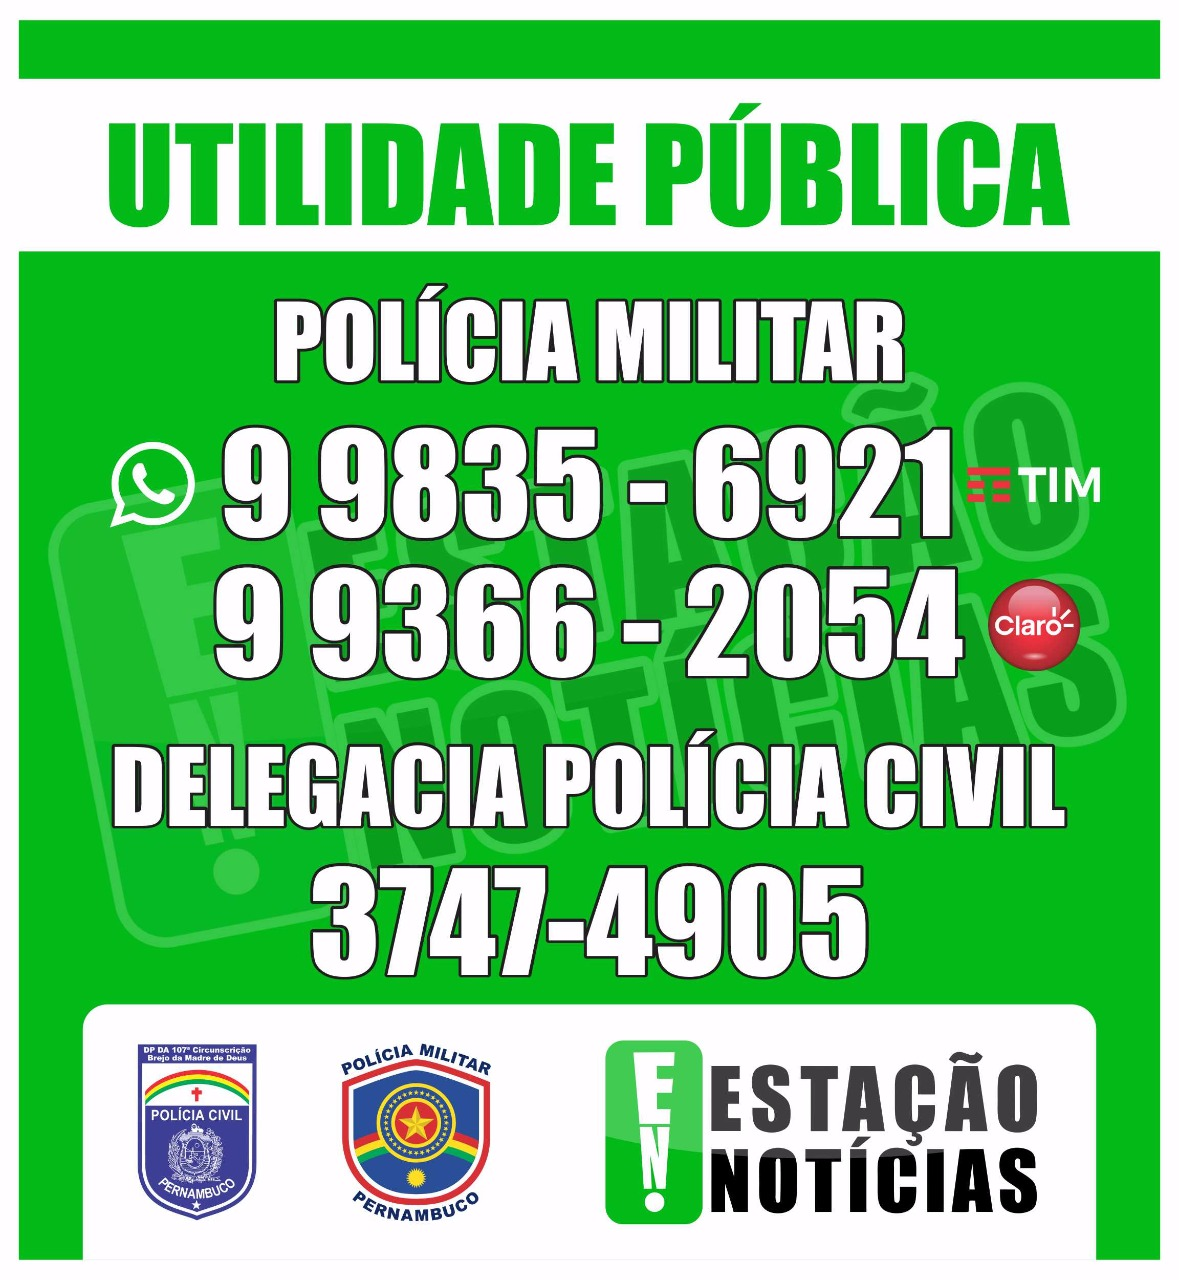 CONTATO DA POLÍCIA